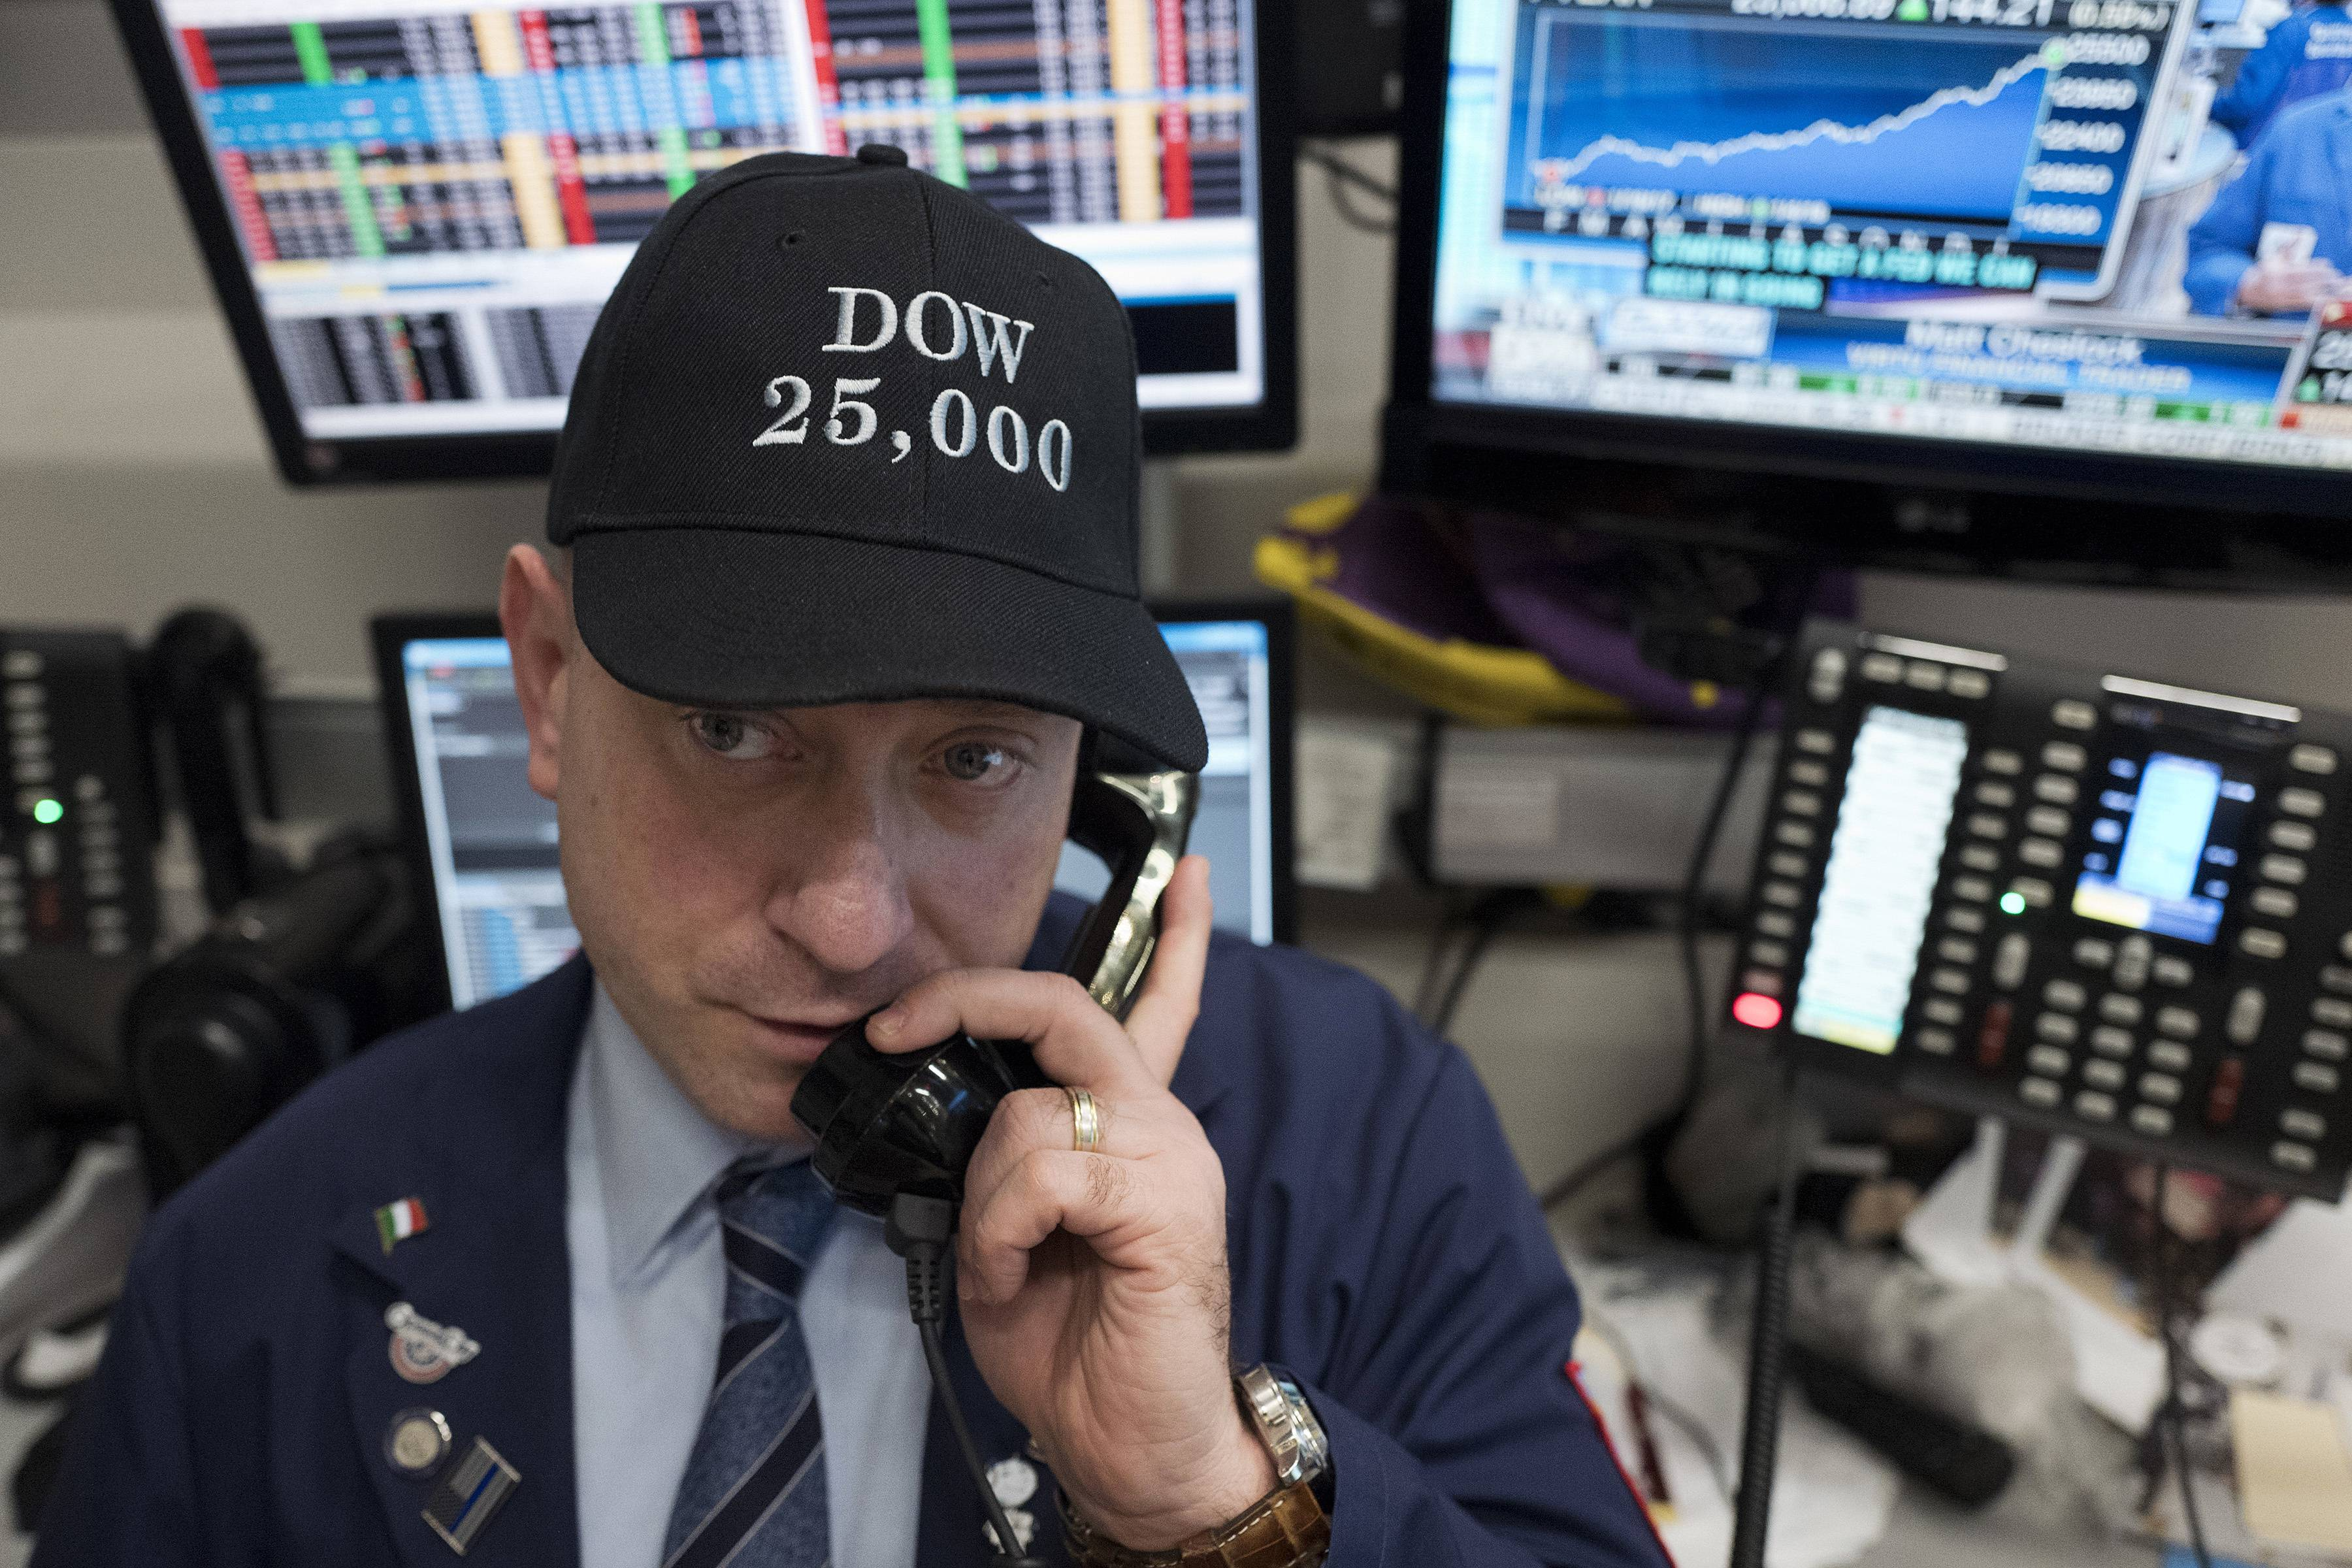 Vincent Pepe, a commodities broker with ICAP Corp., wears a Dow 25,000 hat to work at the New York Stock Exchange, Thursday, Jan. 4, 2018. There's no doubt the U.S. economy and Wall Street have momentum heading into Trump's second year as president, but worker pay remains frustratingly flat.